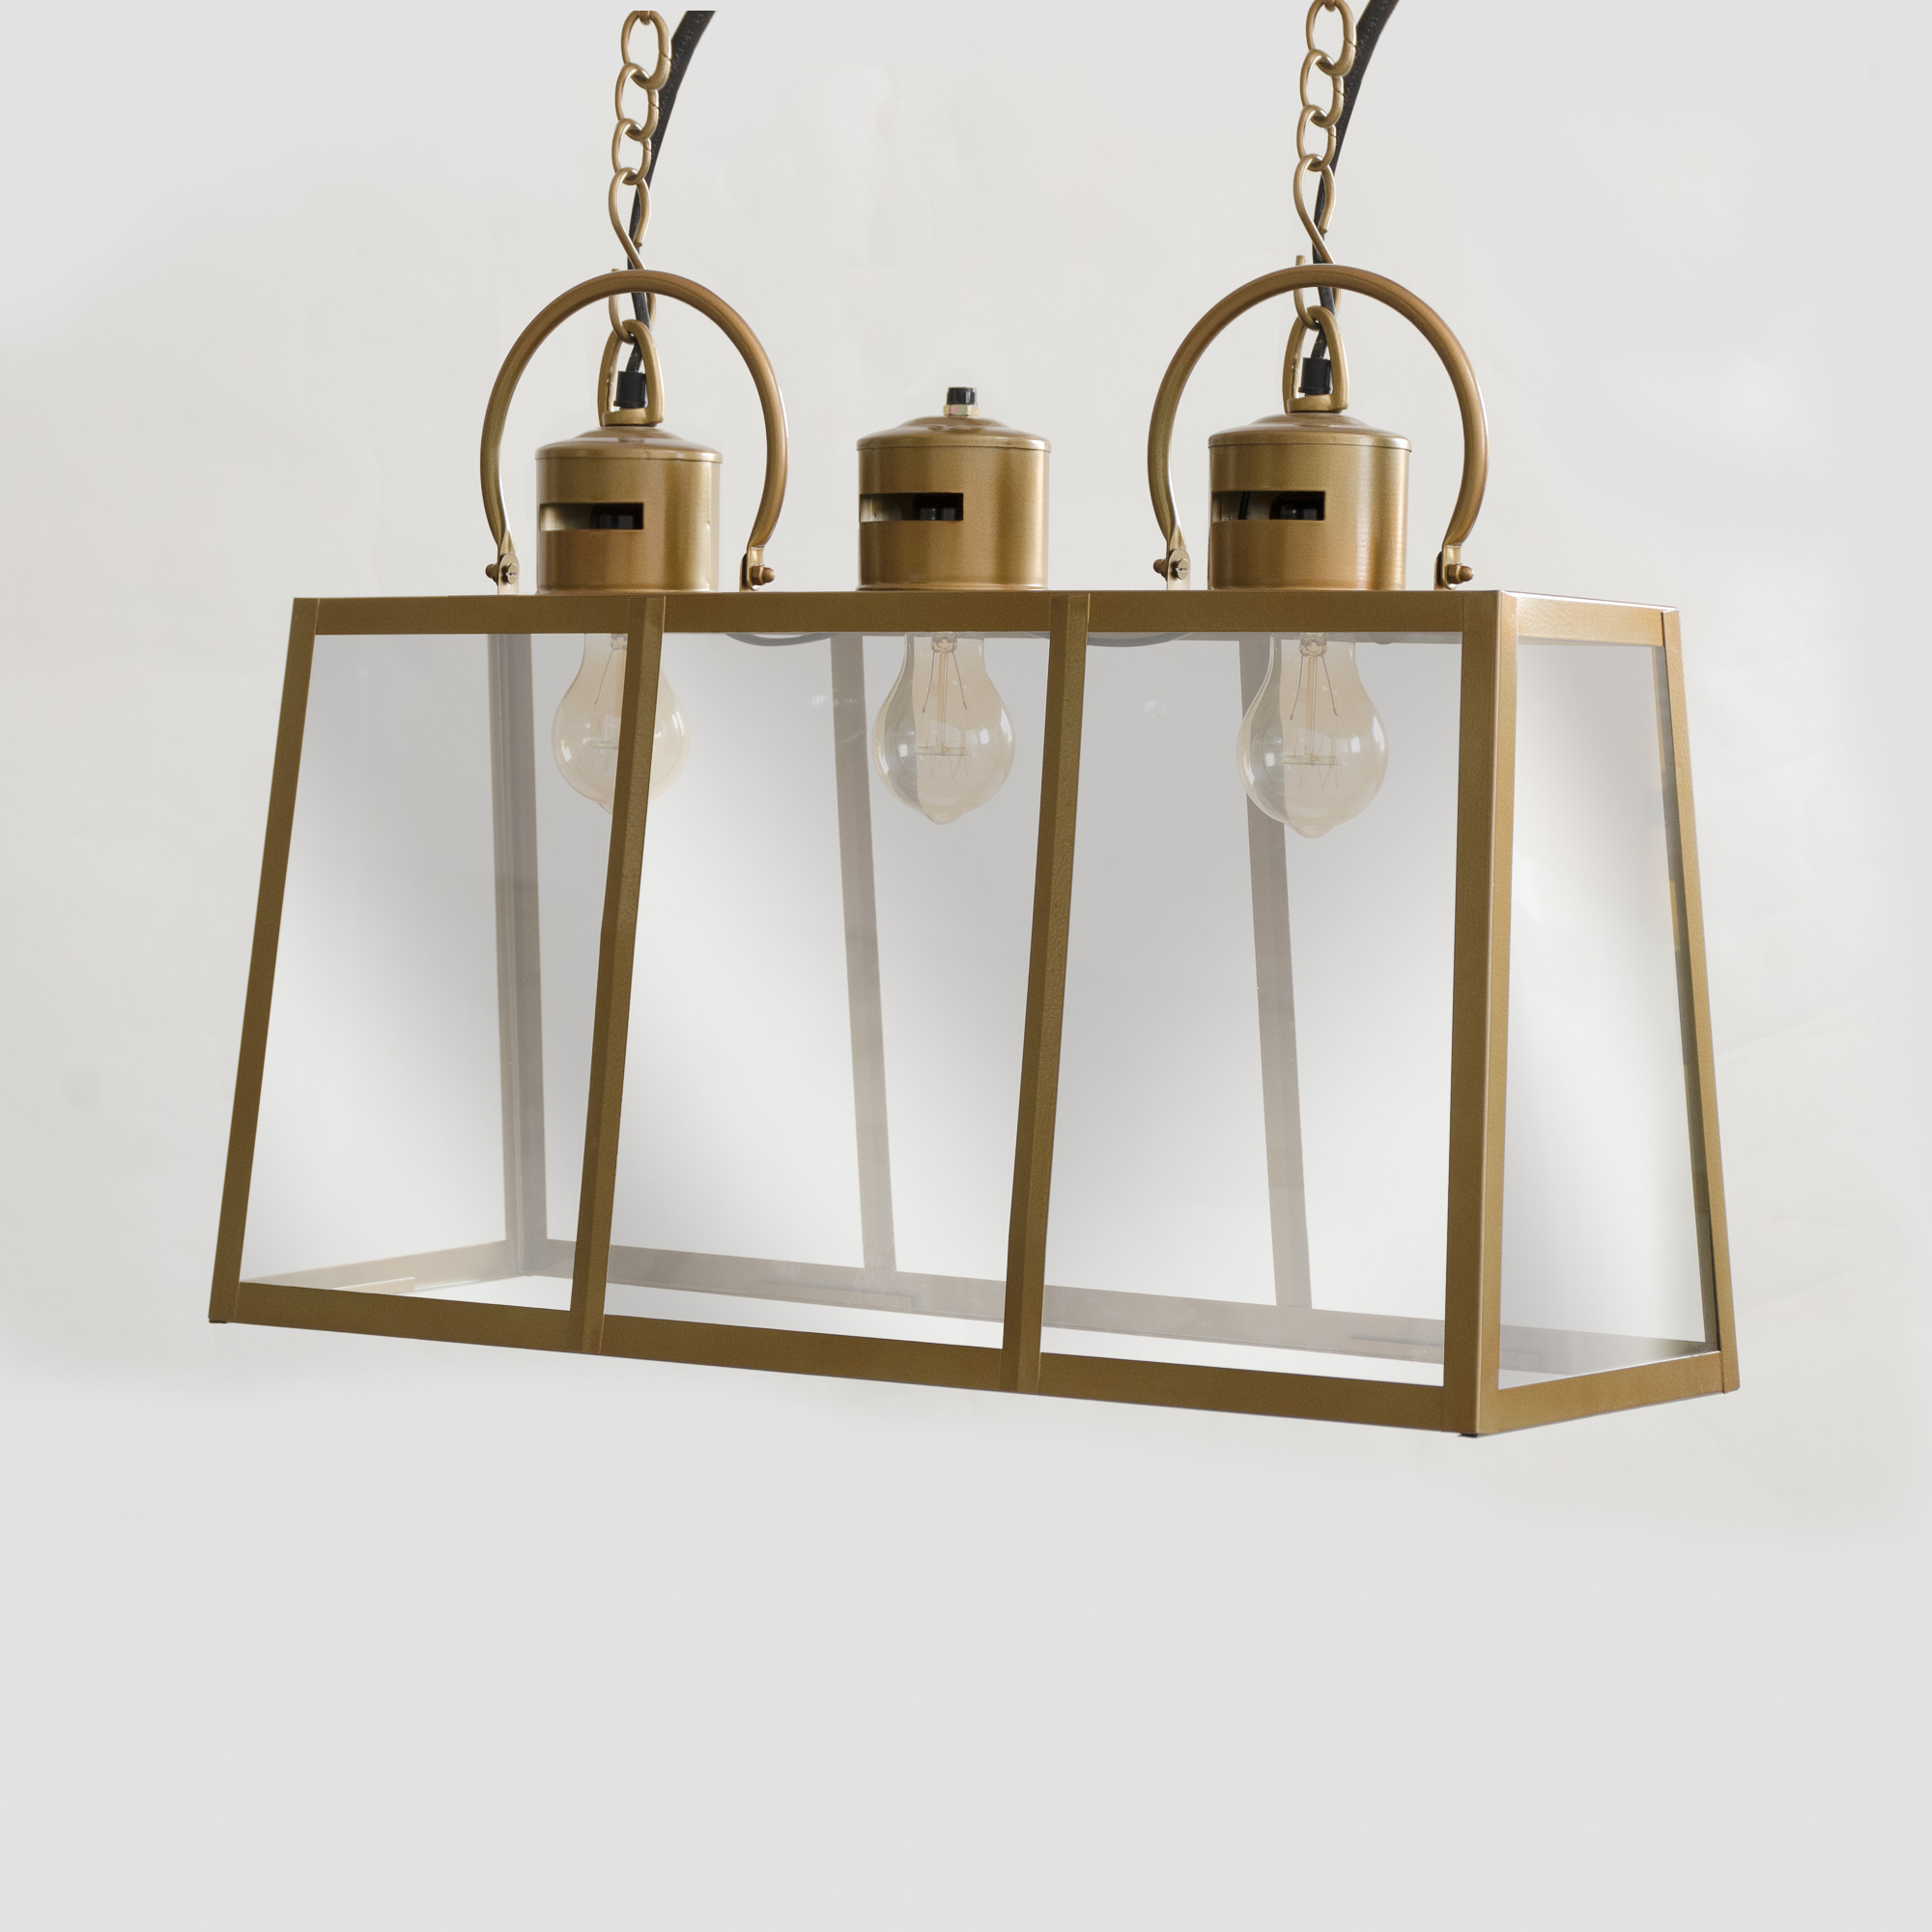 Rome Lantern Chandelier - Antique Brass